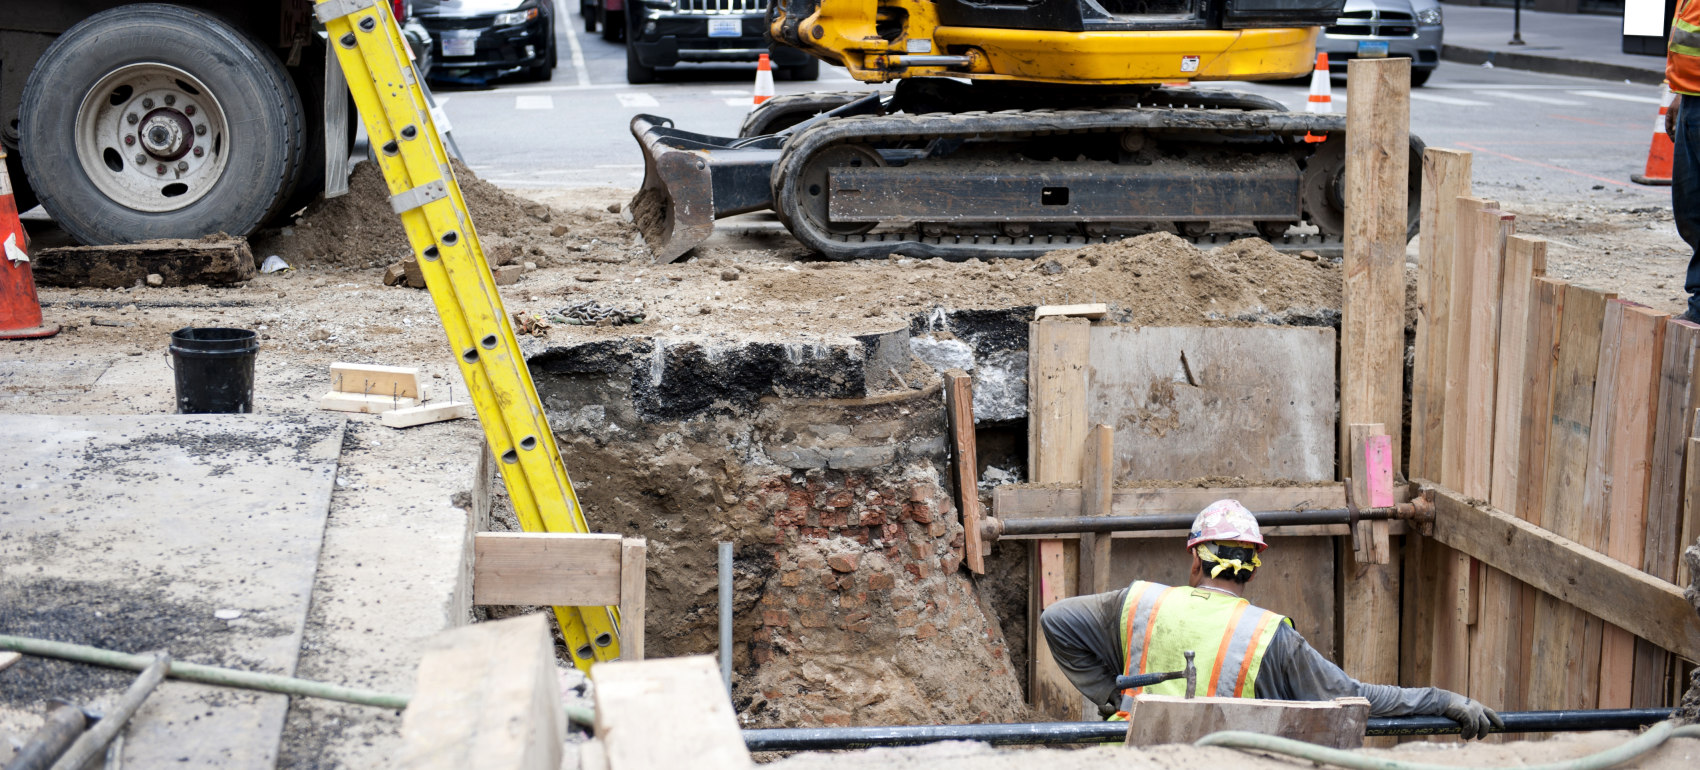 Illinois can spend another $10B on infrastructure without